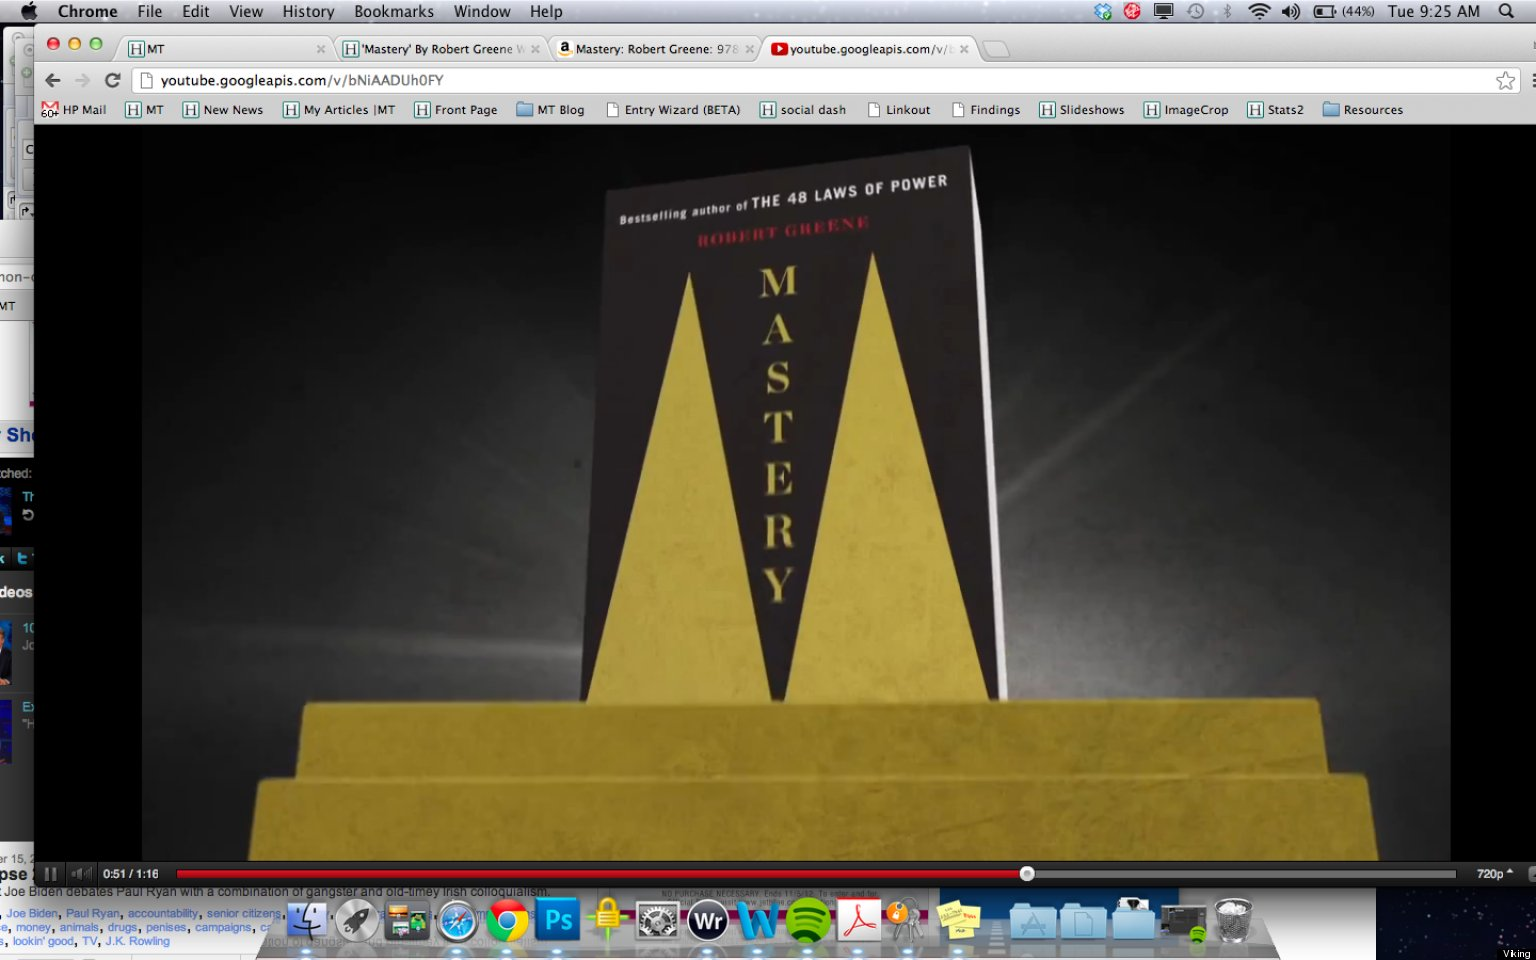 'Mastery' By Robert Greene: How To Become A Master In Your